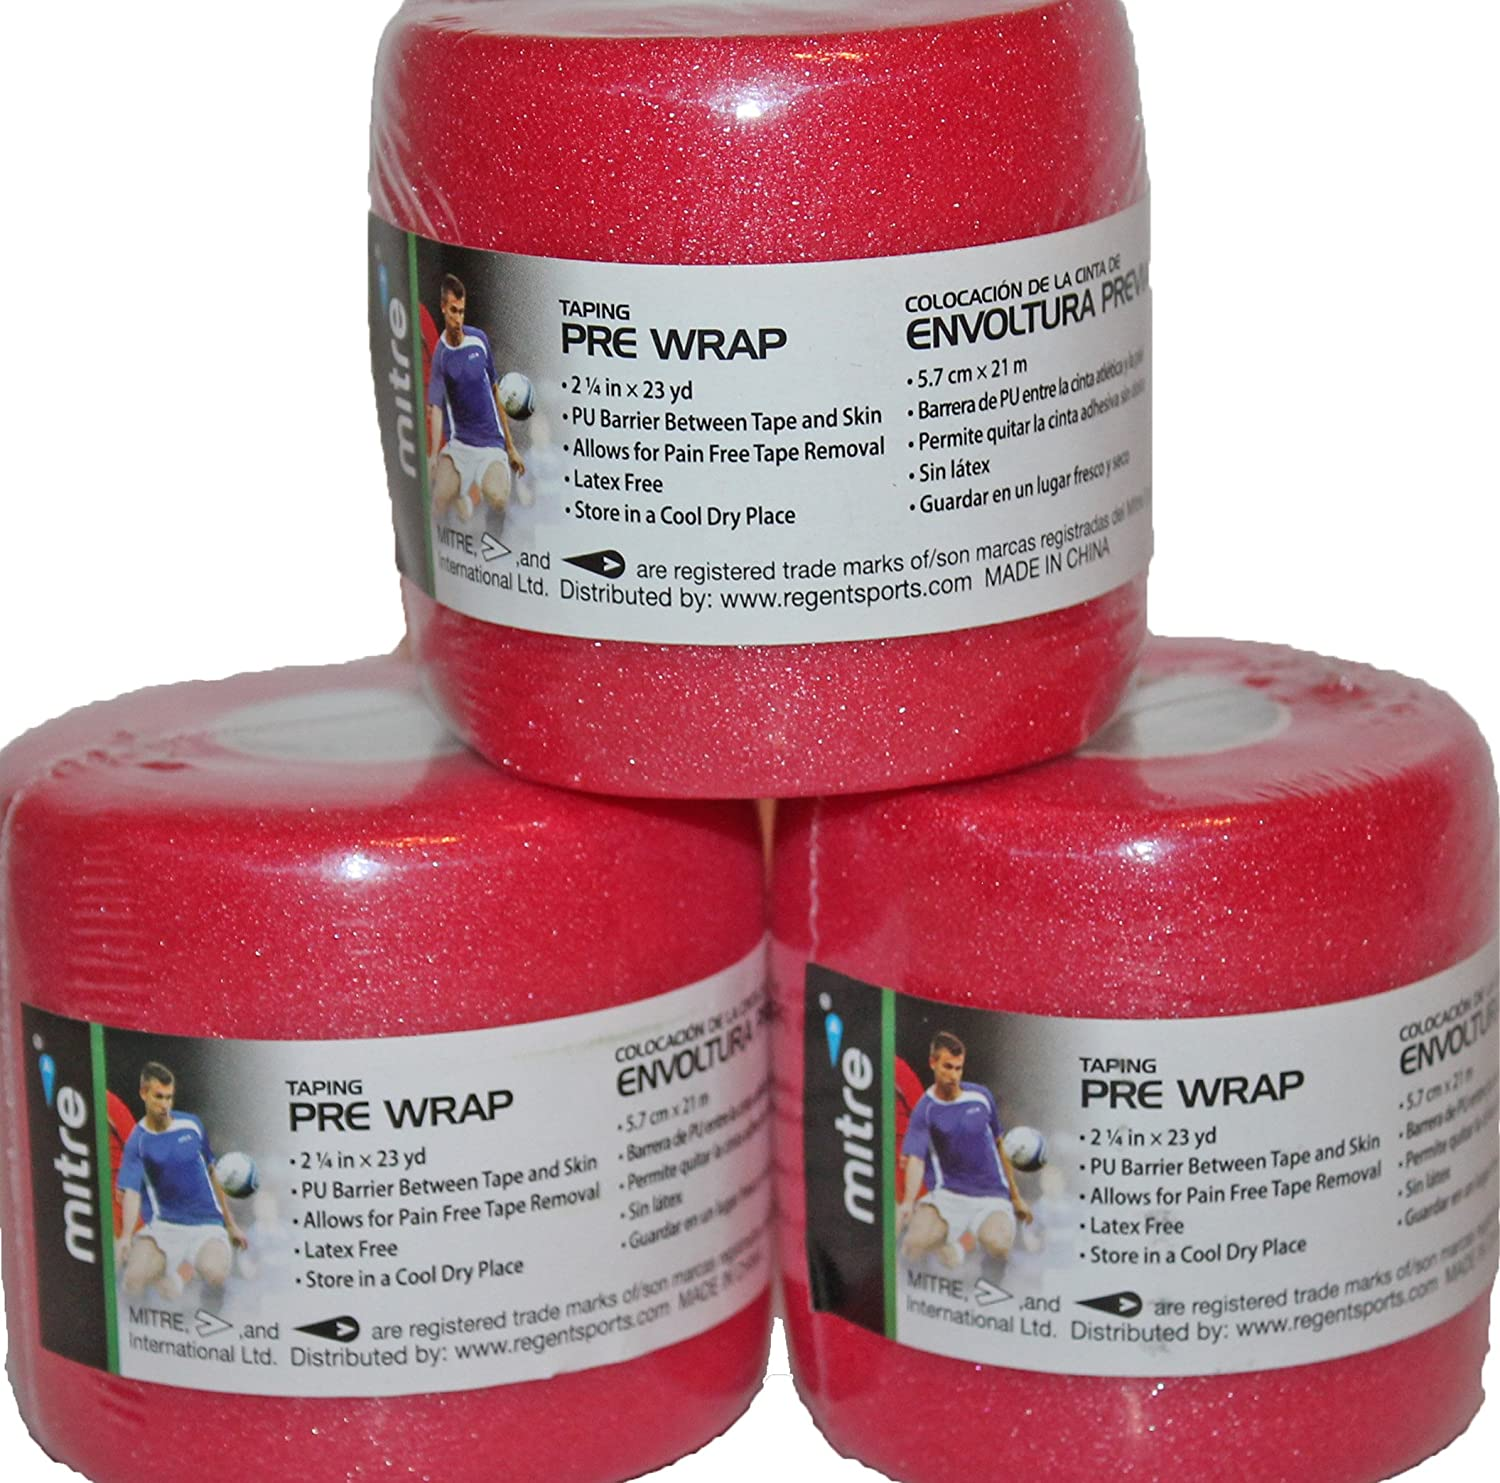 Amazon.com: 3 PK RED Rolls PreWrap Pre-Wrap Athletic Sport Tape Taping Hair Tie 23 yds each (Red): Health & Personal Care